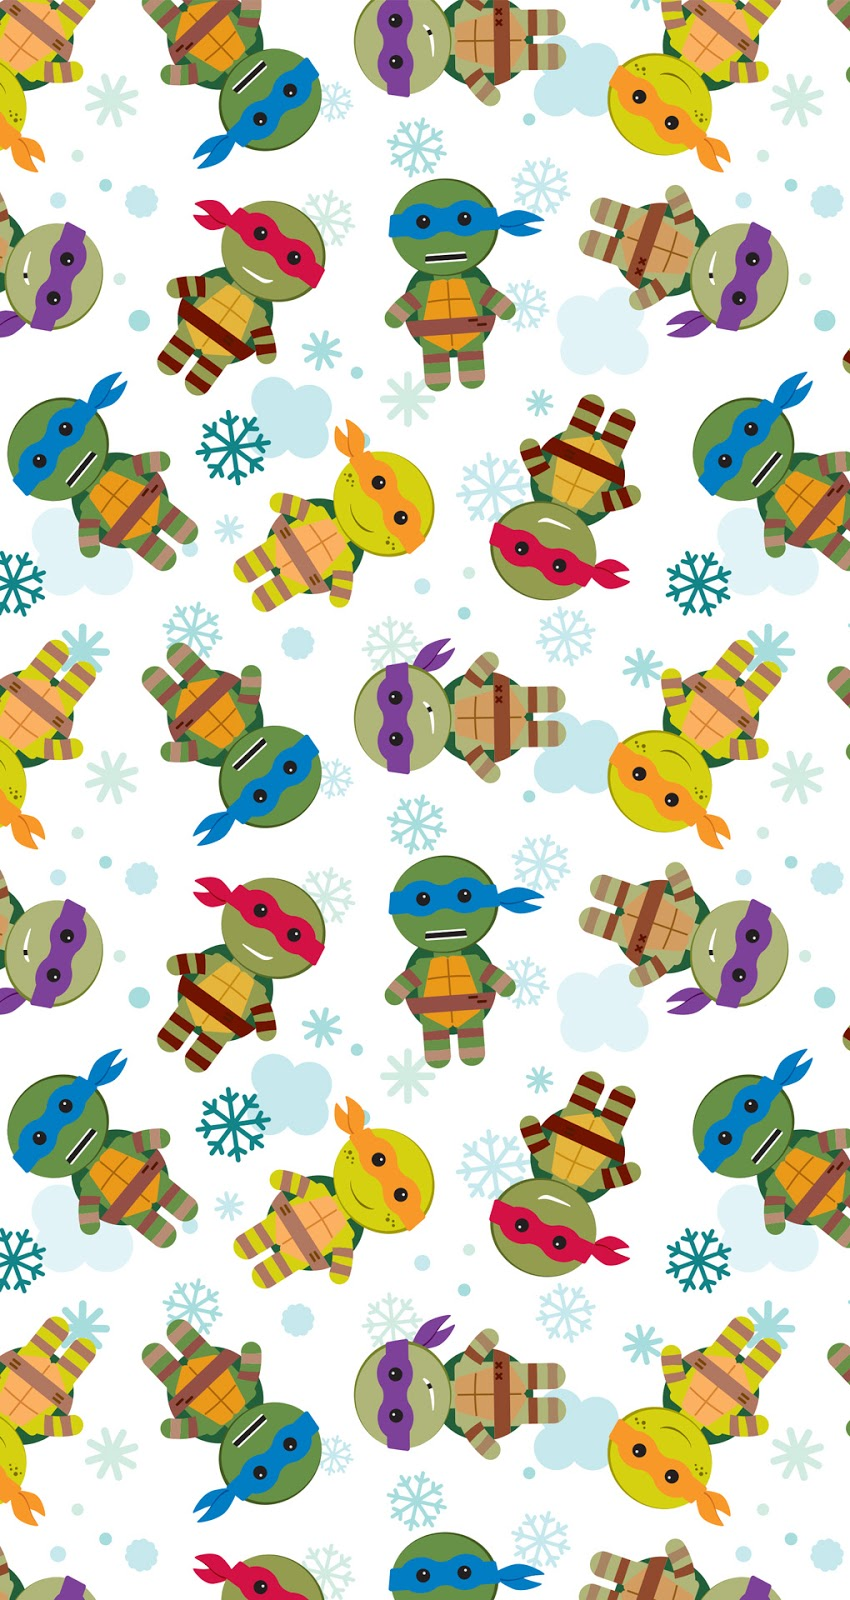 NickALive!: Festive Nickelodeon Mobile Backgrounds By Nickelodeon Greece